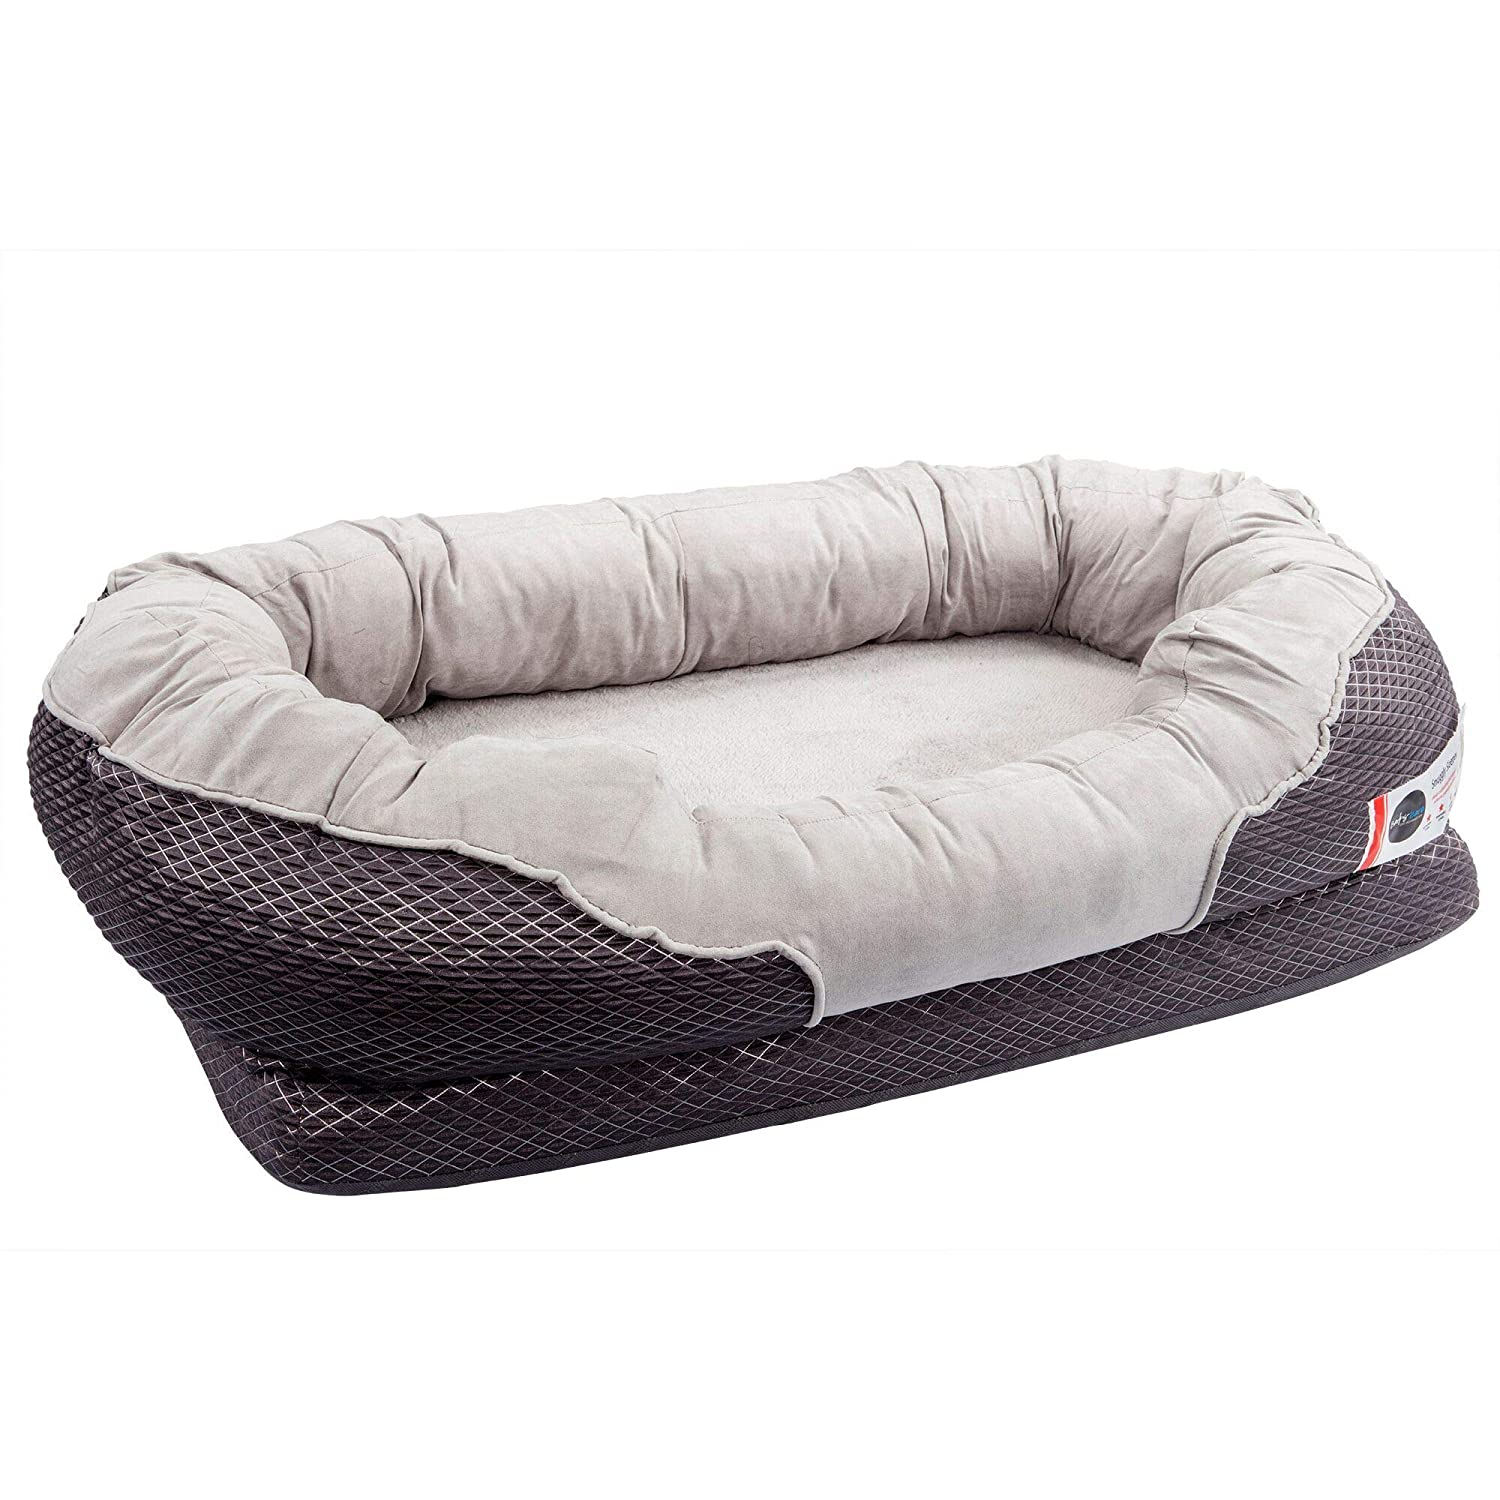 BarksBar Gray Orthopedic Dog Bed – Snuggly Sleeper – with Grooved Orthopedic Foam, Extra Comfy Cotton-Padded Rim Cushion and Nonslip Bottom